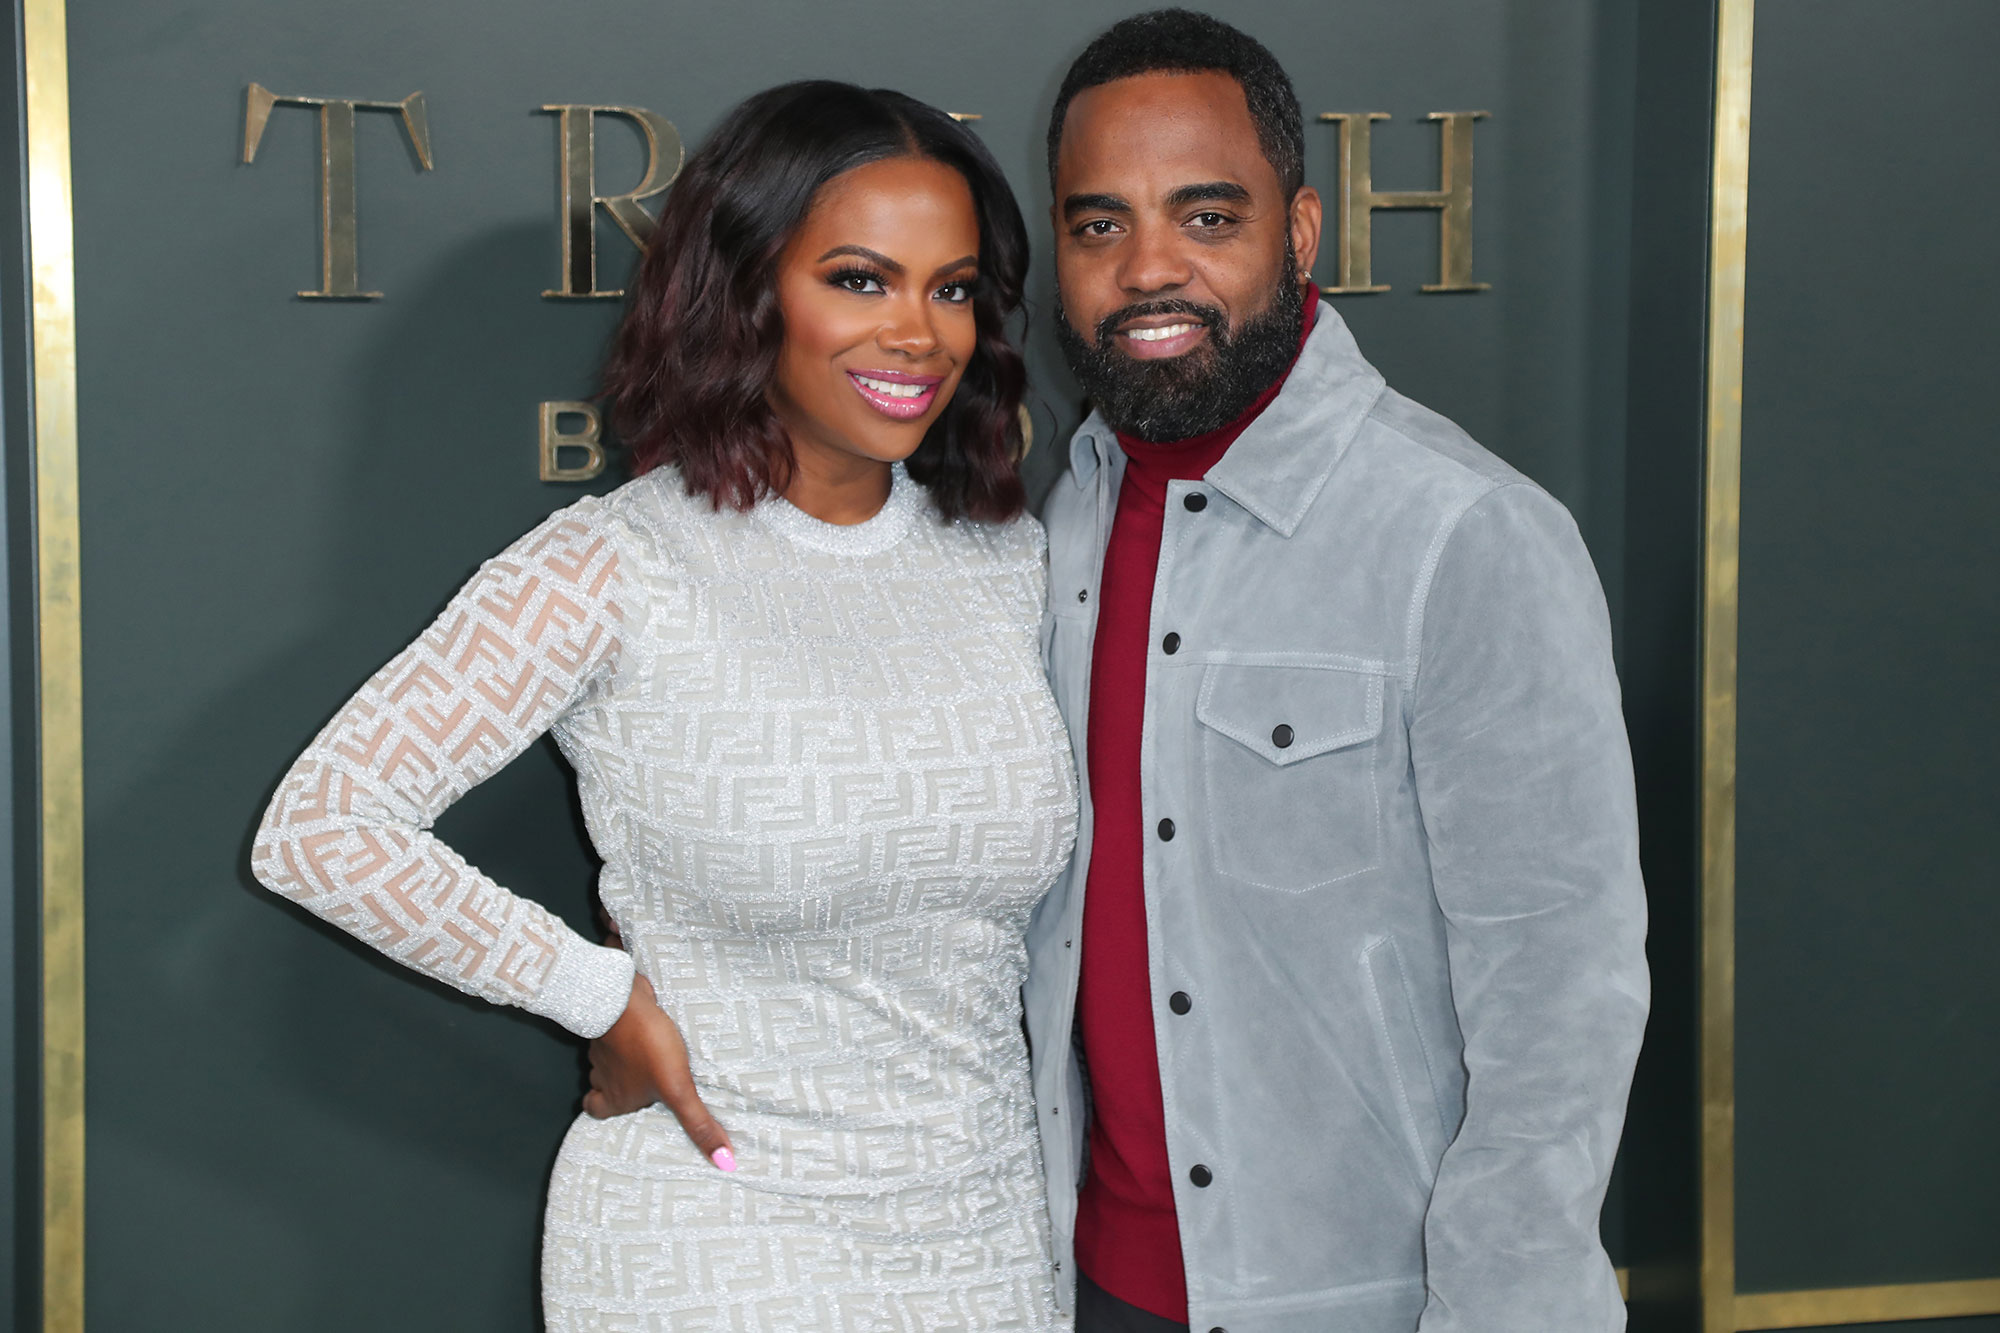 Kandi Burruss Shows Off A Fresh Look In This Blue Sporty Outfit - Check It Out Here